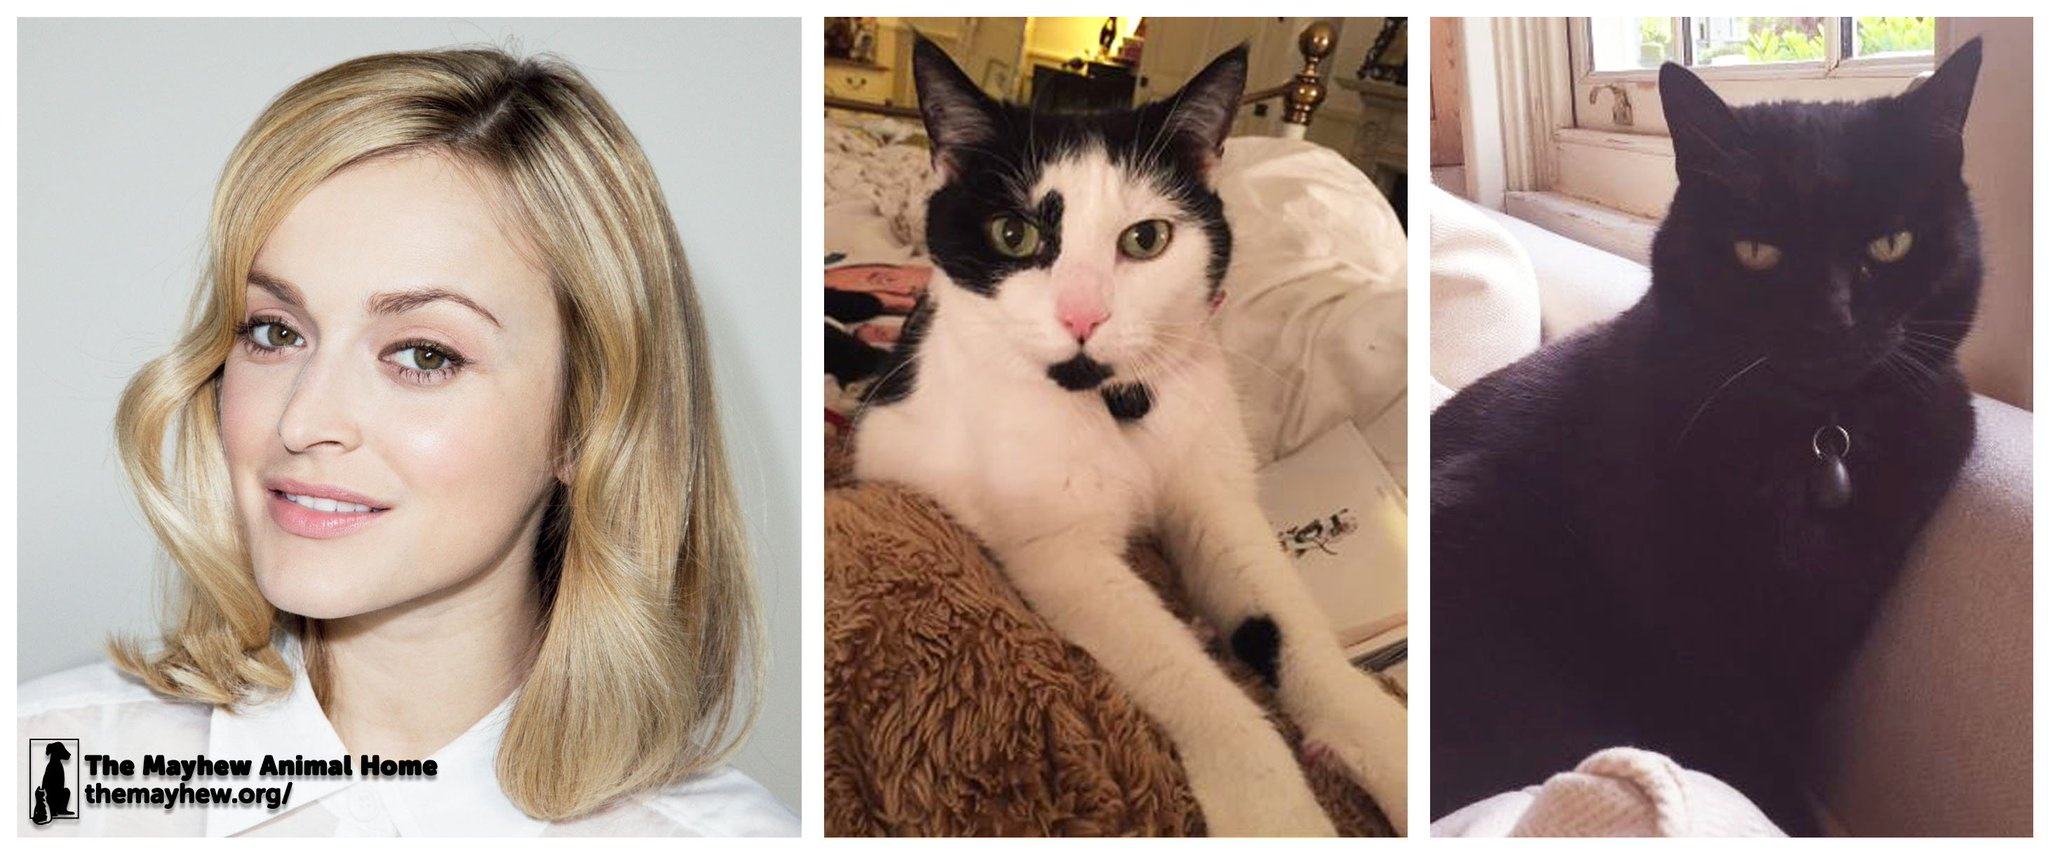 RT @themayhew: We are happy to see that @Fearnecotton's rescue Mayhew #cats are doing well! https://t.co/xxINDXRTPk #AdoptDontShop https://…